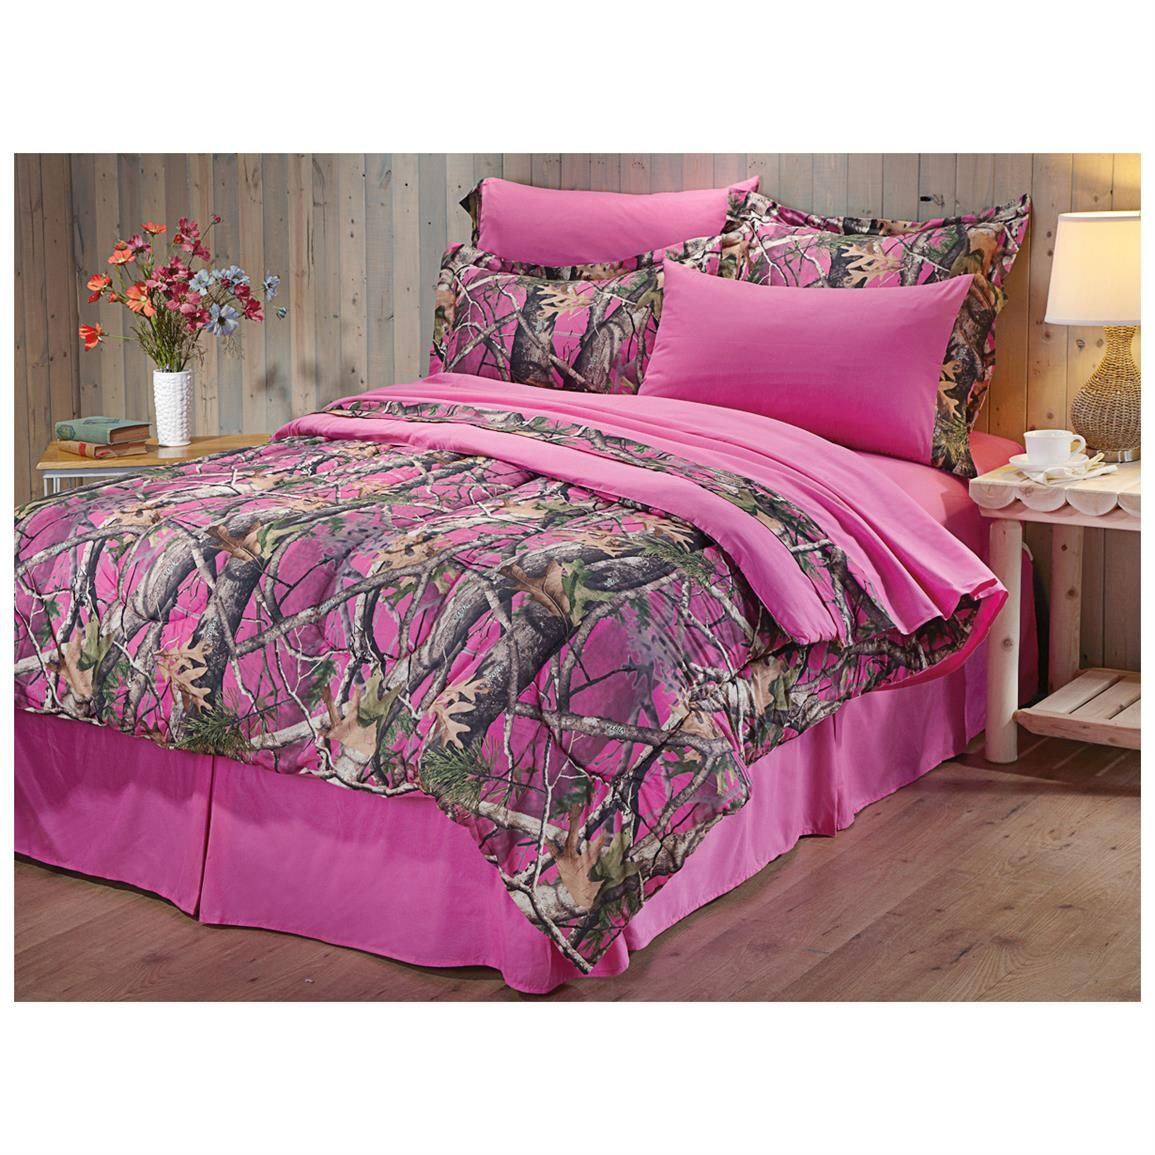 Castlecreek Next Vista Pink Camo Bed Set 8 Piece